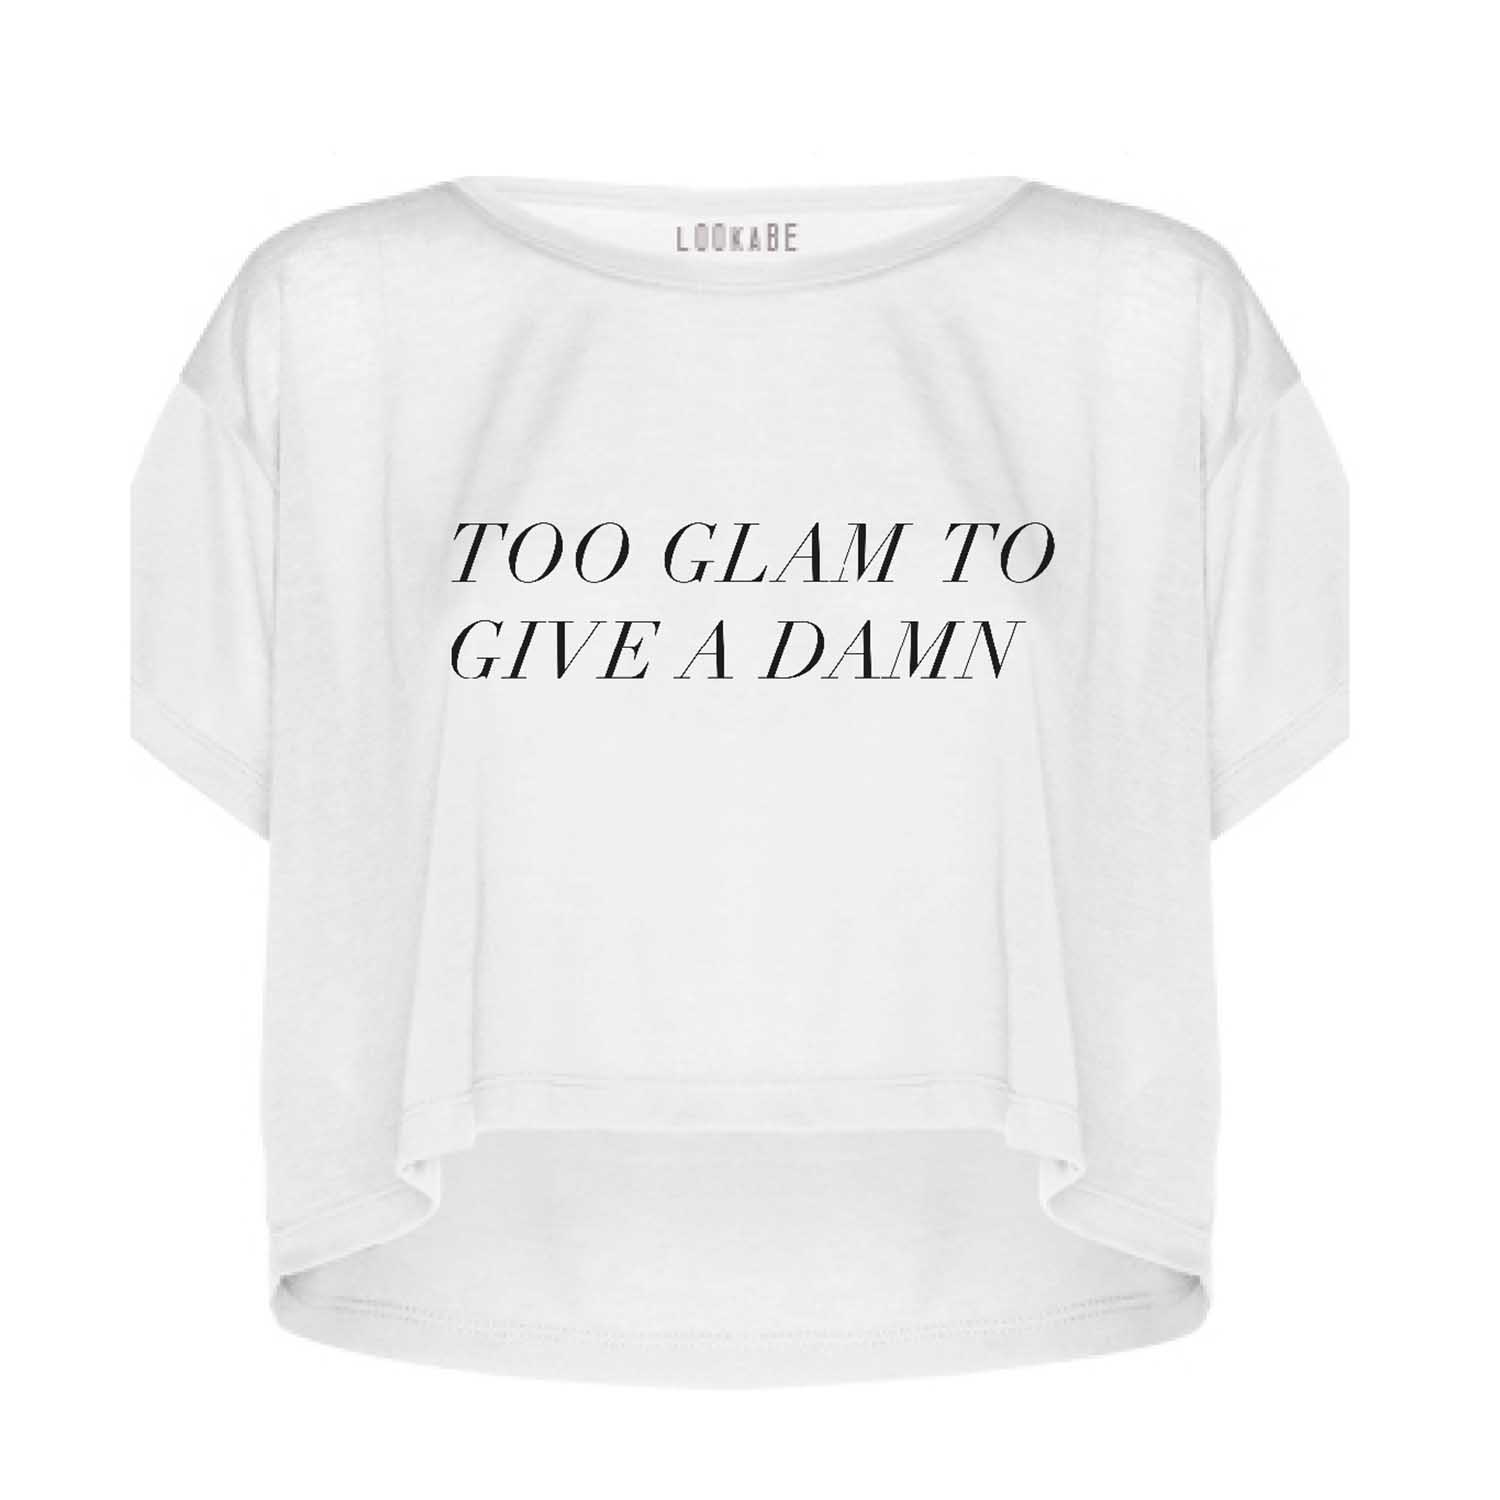 Super Thin Crop Top - Too glam